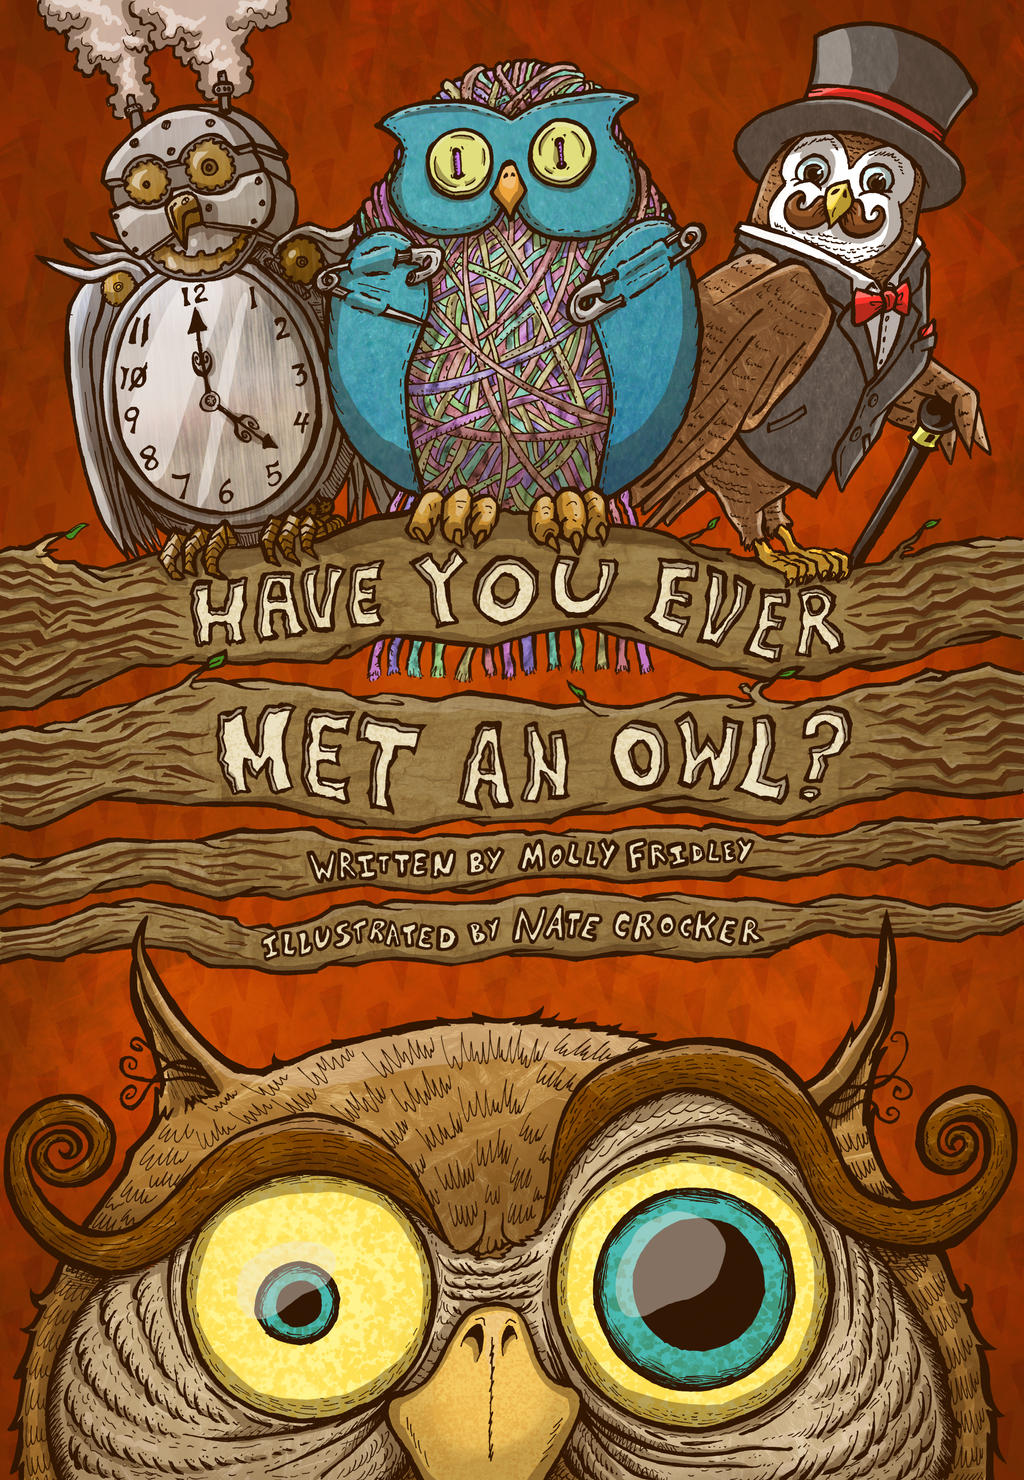 Have You Ever Met An Owl?